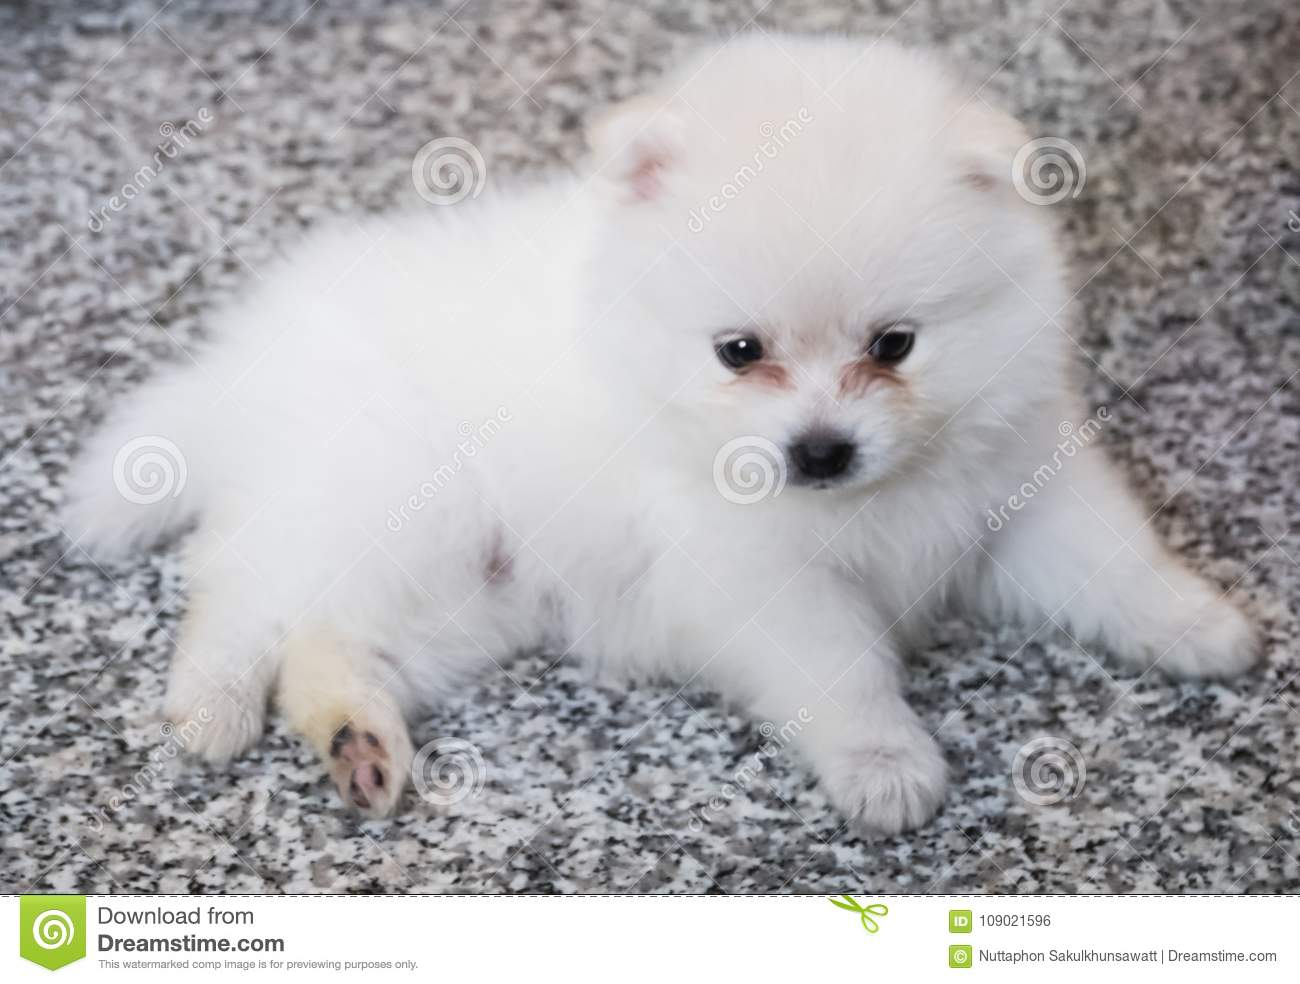 Cute White Pomeranian Puppy On Granite Background Stock Photo Image Of Nature Little 109021596